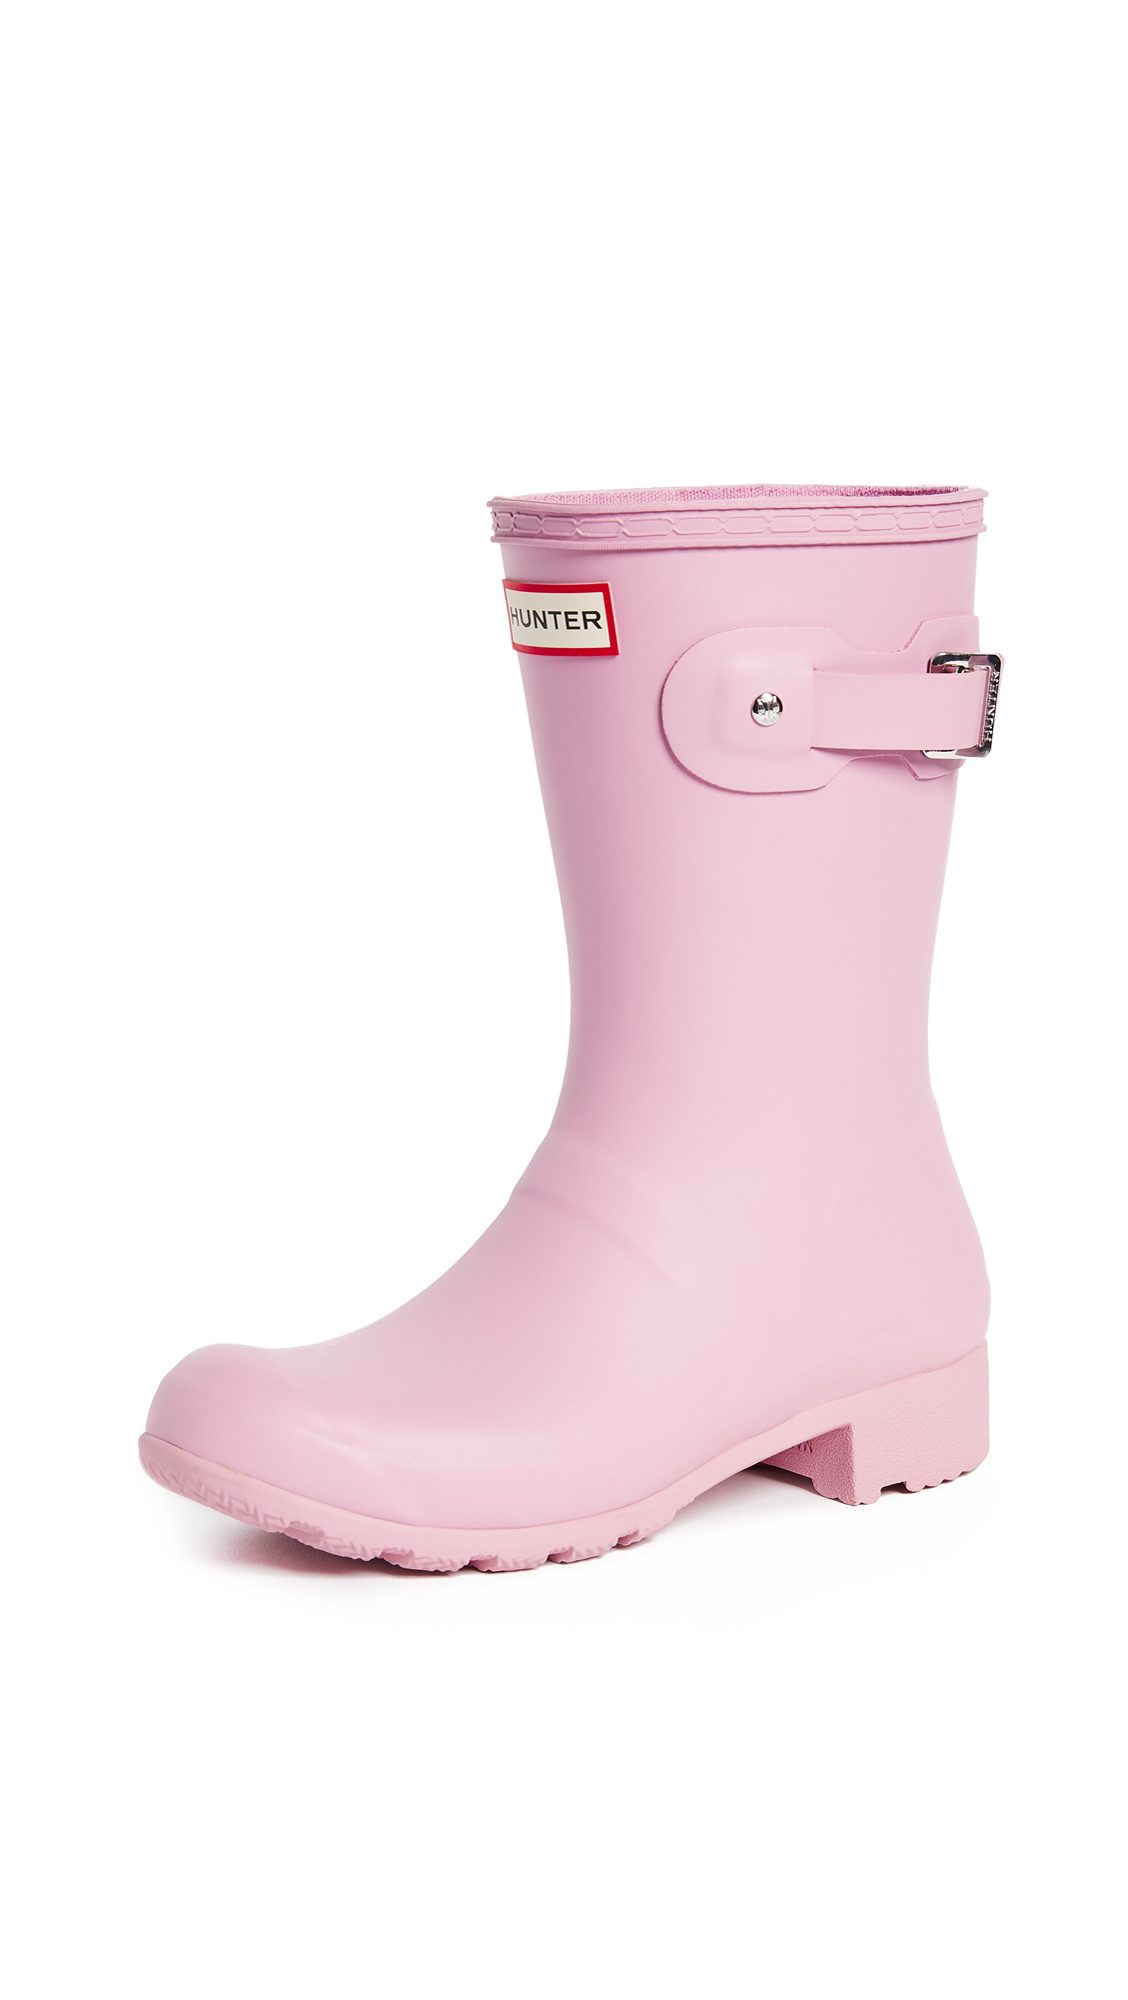 Hunter Boots Original Tour Short Boots - Blossom